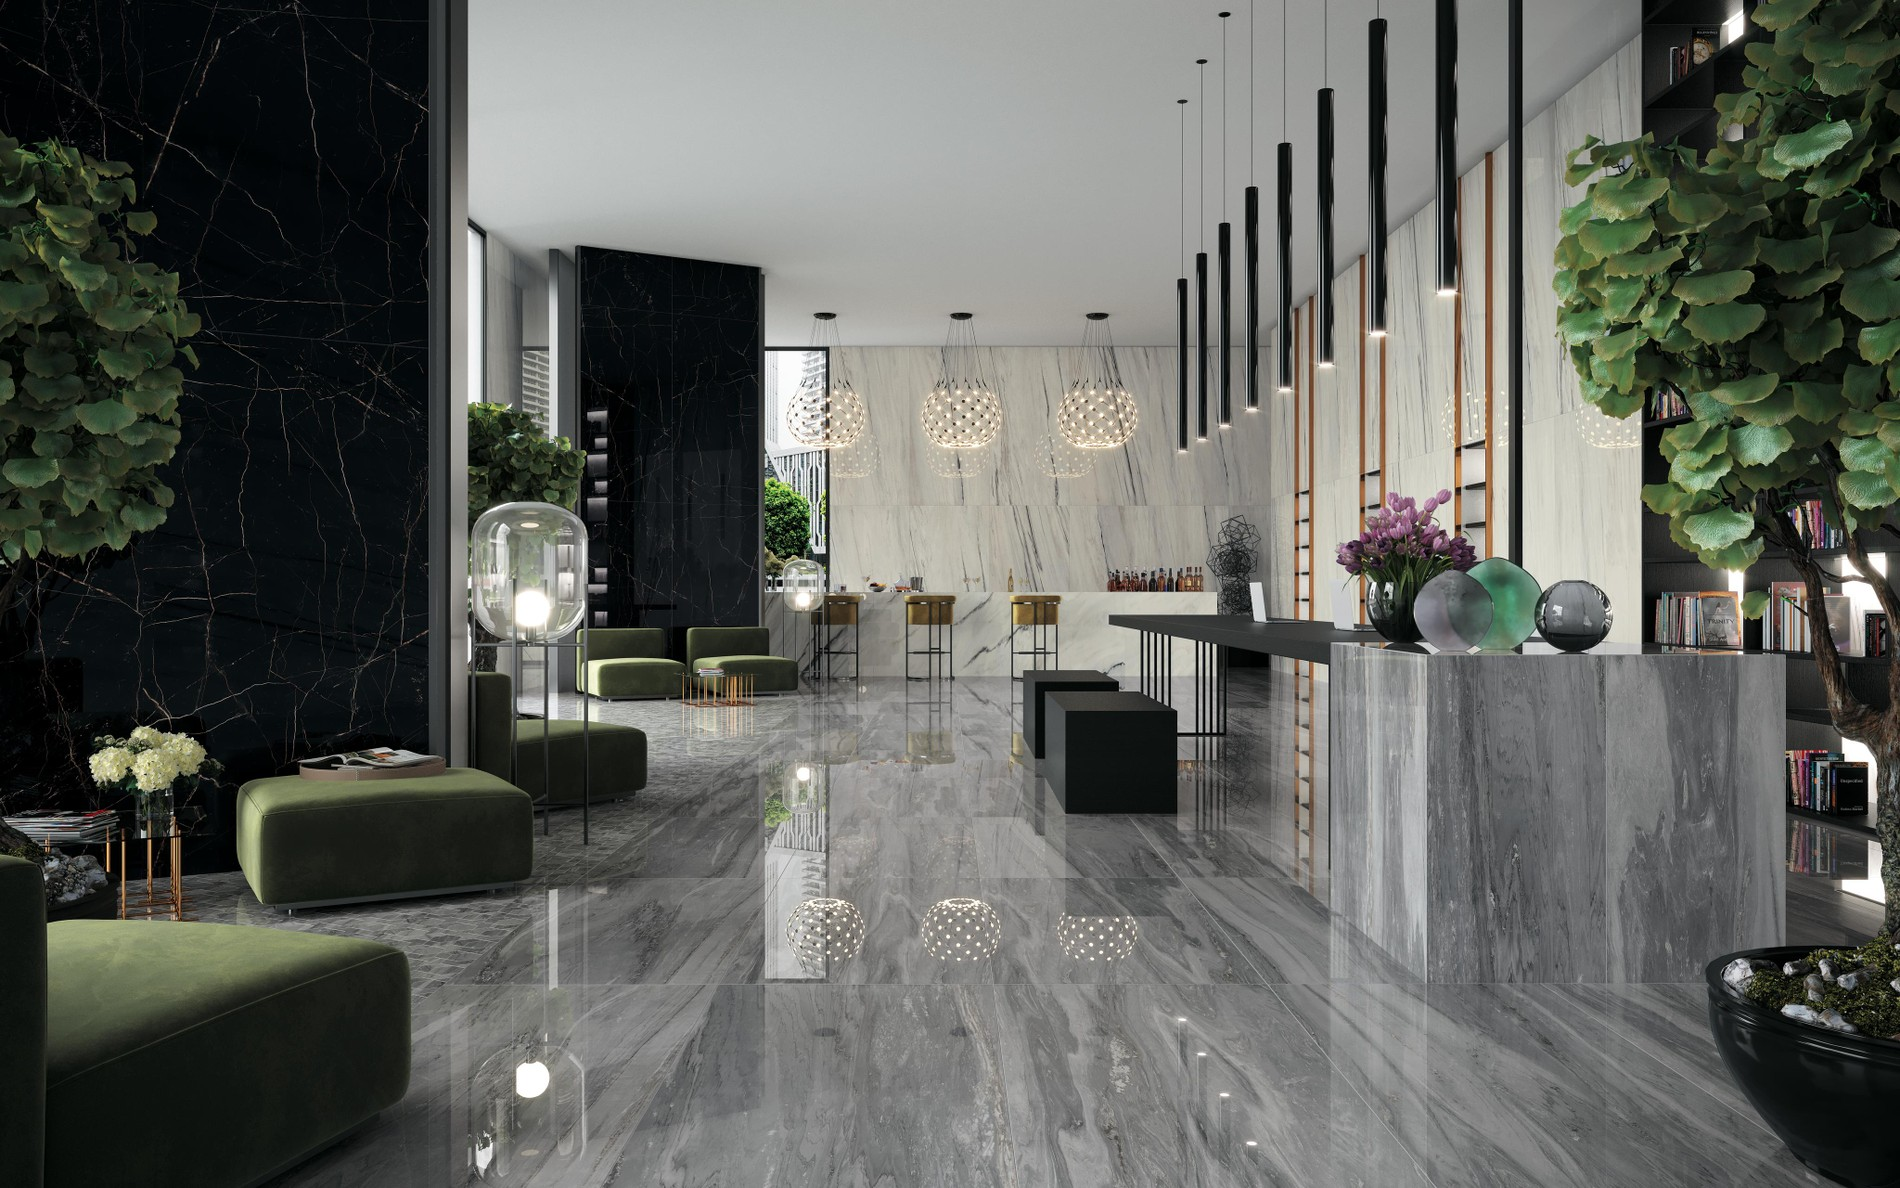 The wonder of the marble effect. From architecture to interior design.